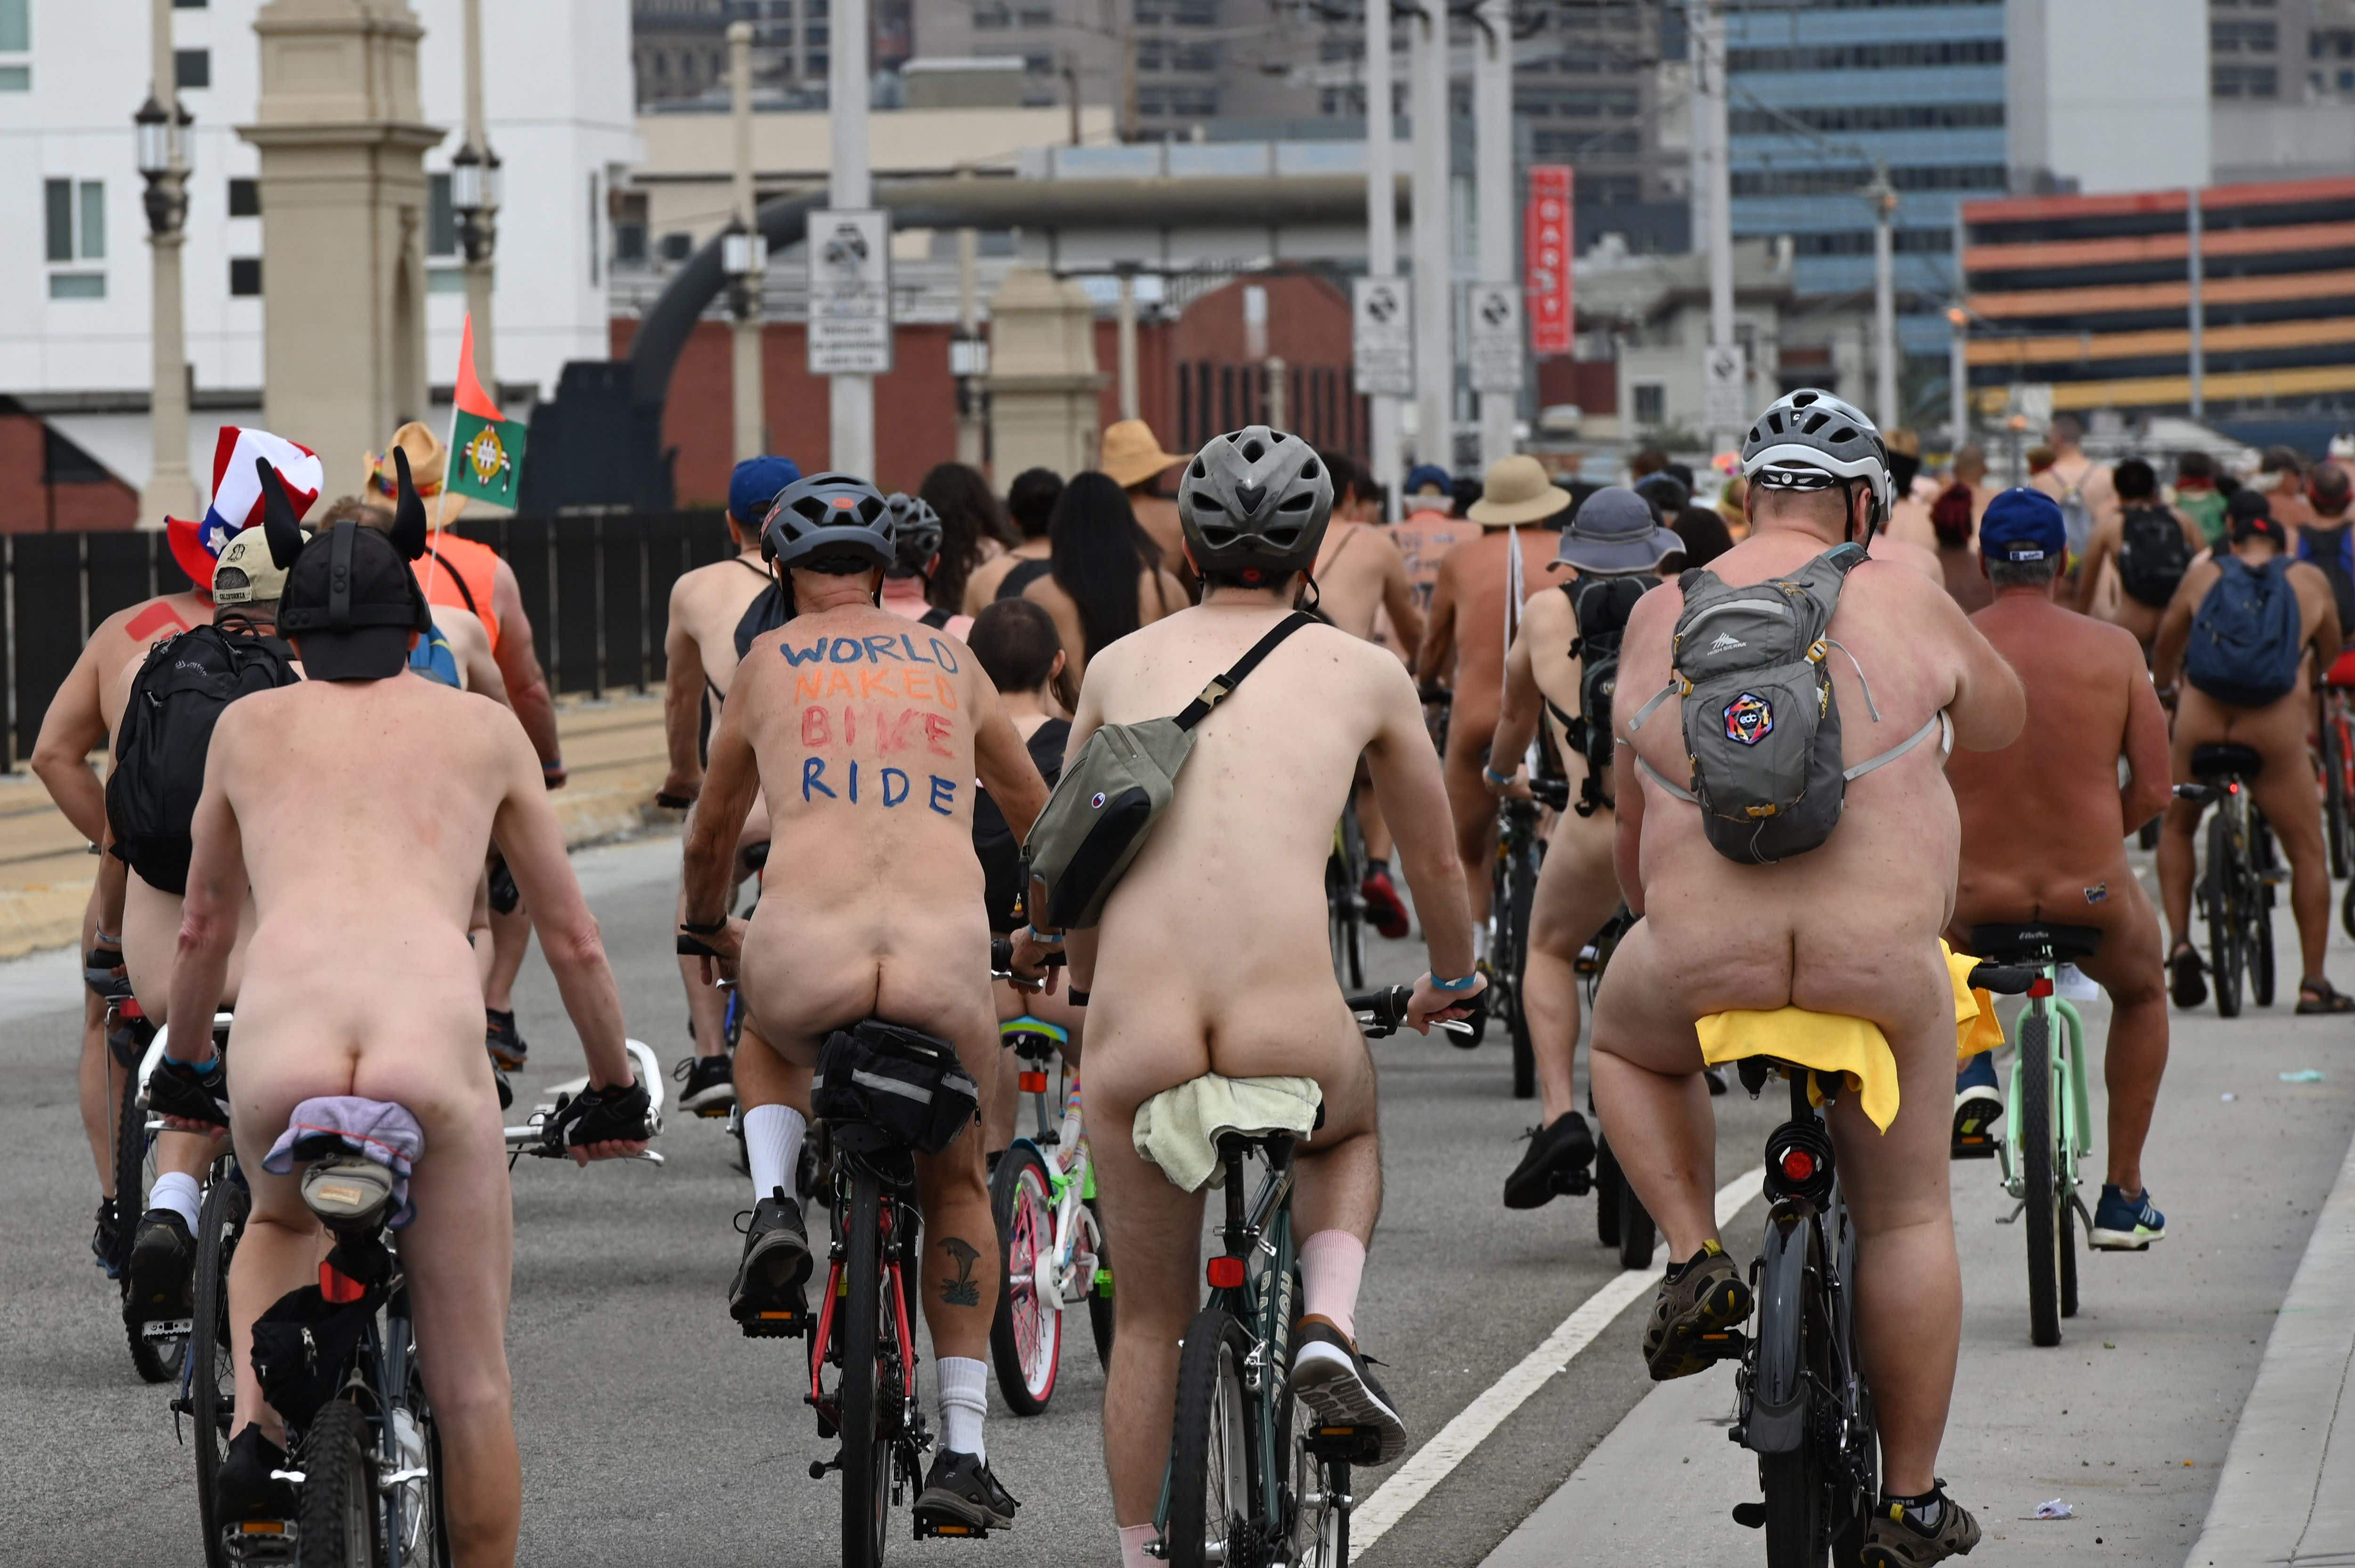 World Naked Bike Ride events embrace body positivity © Robyn Beck / AFP / Getty Images